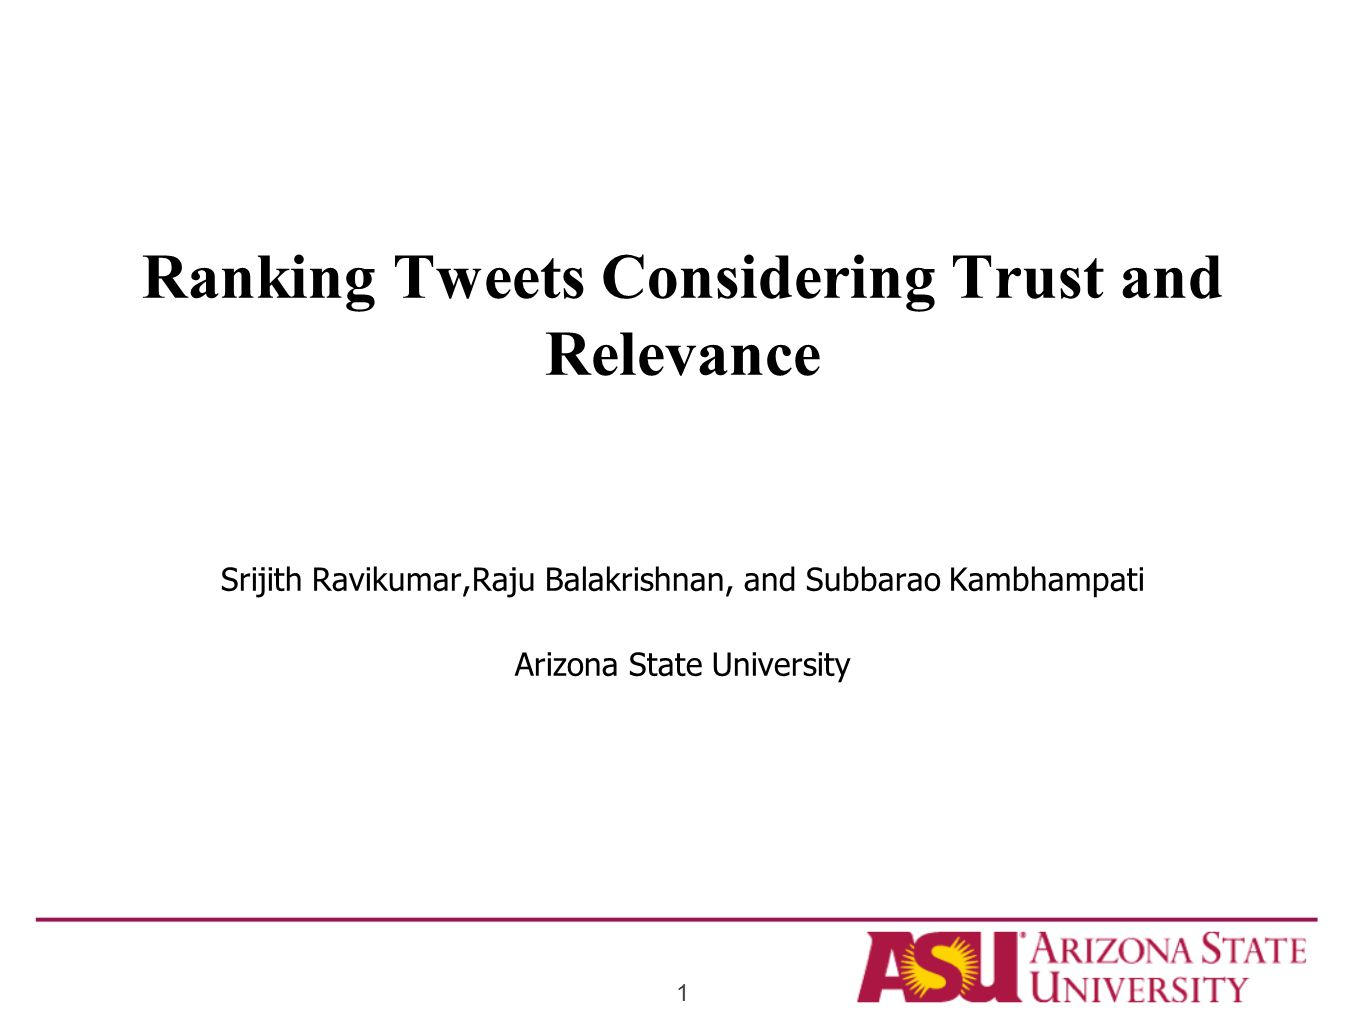 Ranking Tweets Considering Trust and Relevance Srijith Ravikumar,Raju Balakrishnan, and Subbarao Kambhampati Arizona State University 1